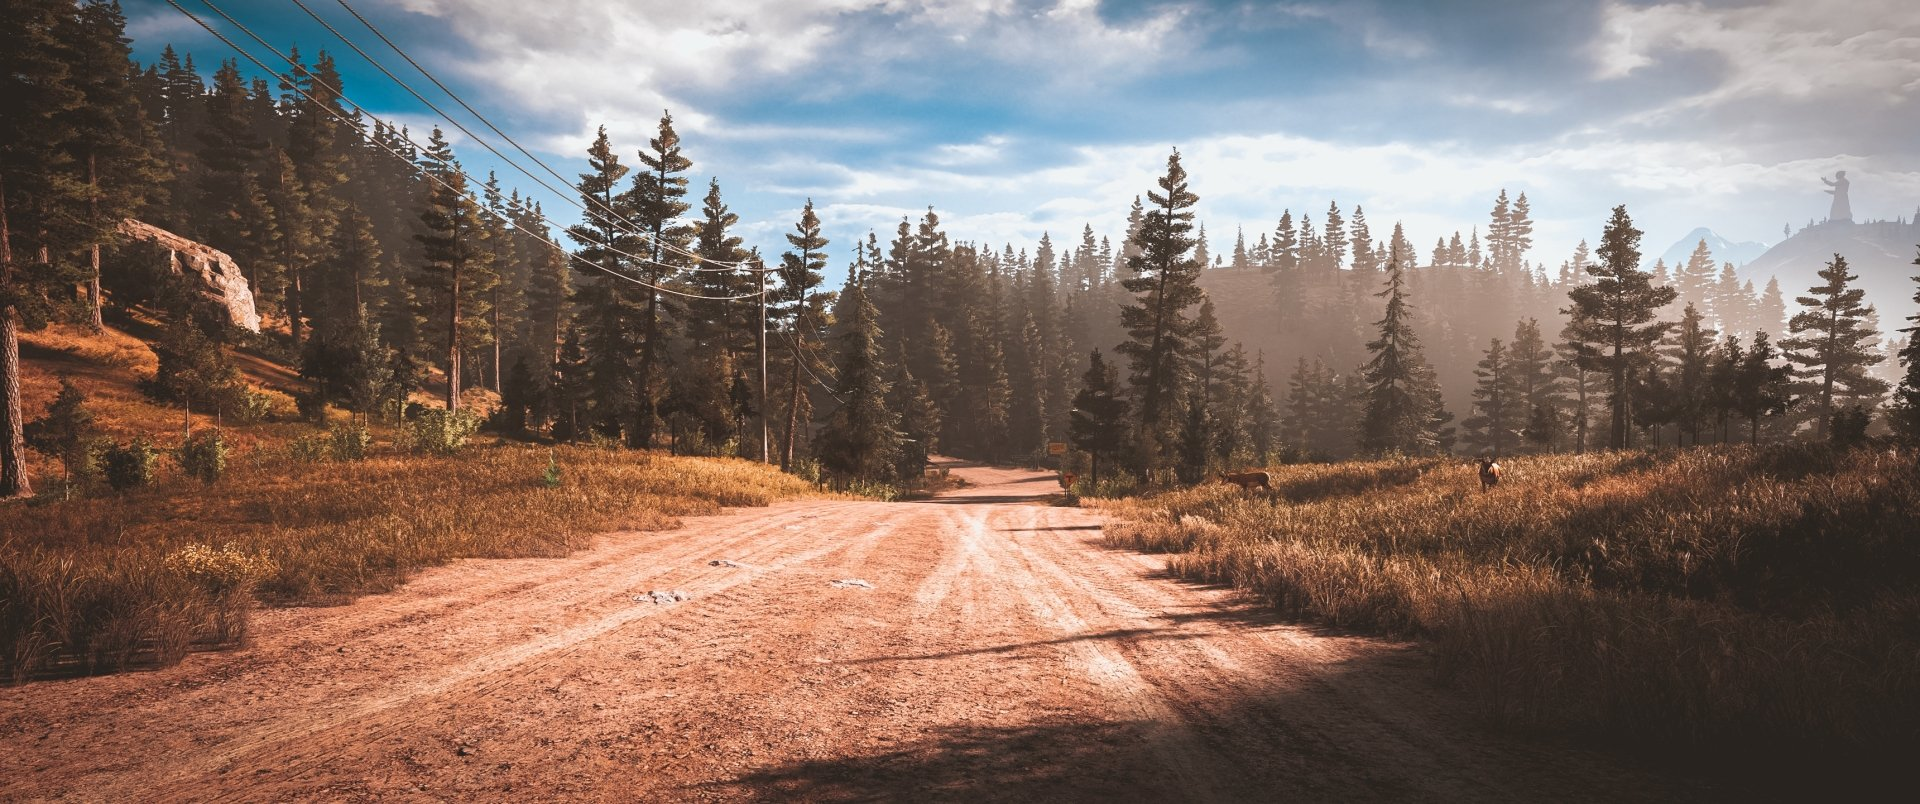 Good Morning Montana HD Wallpaper   Background Image   3440x1440   ID:1043683 - Wallpaper Abyss